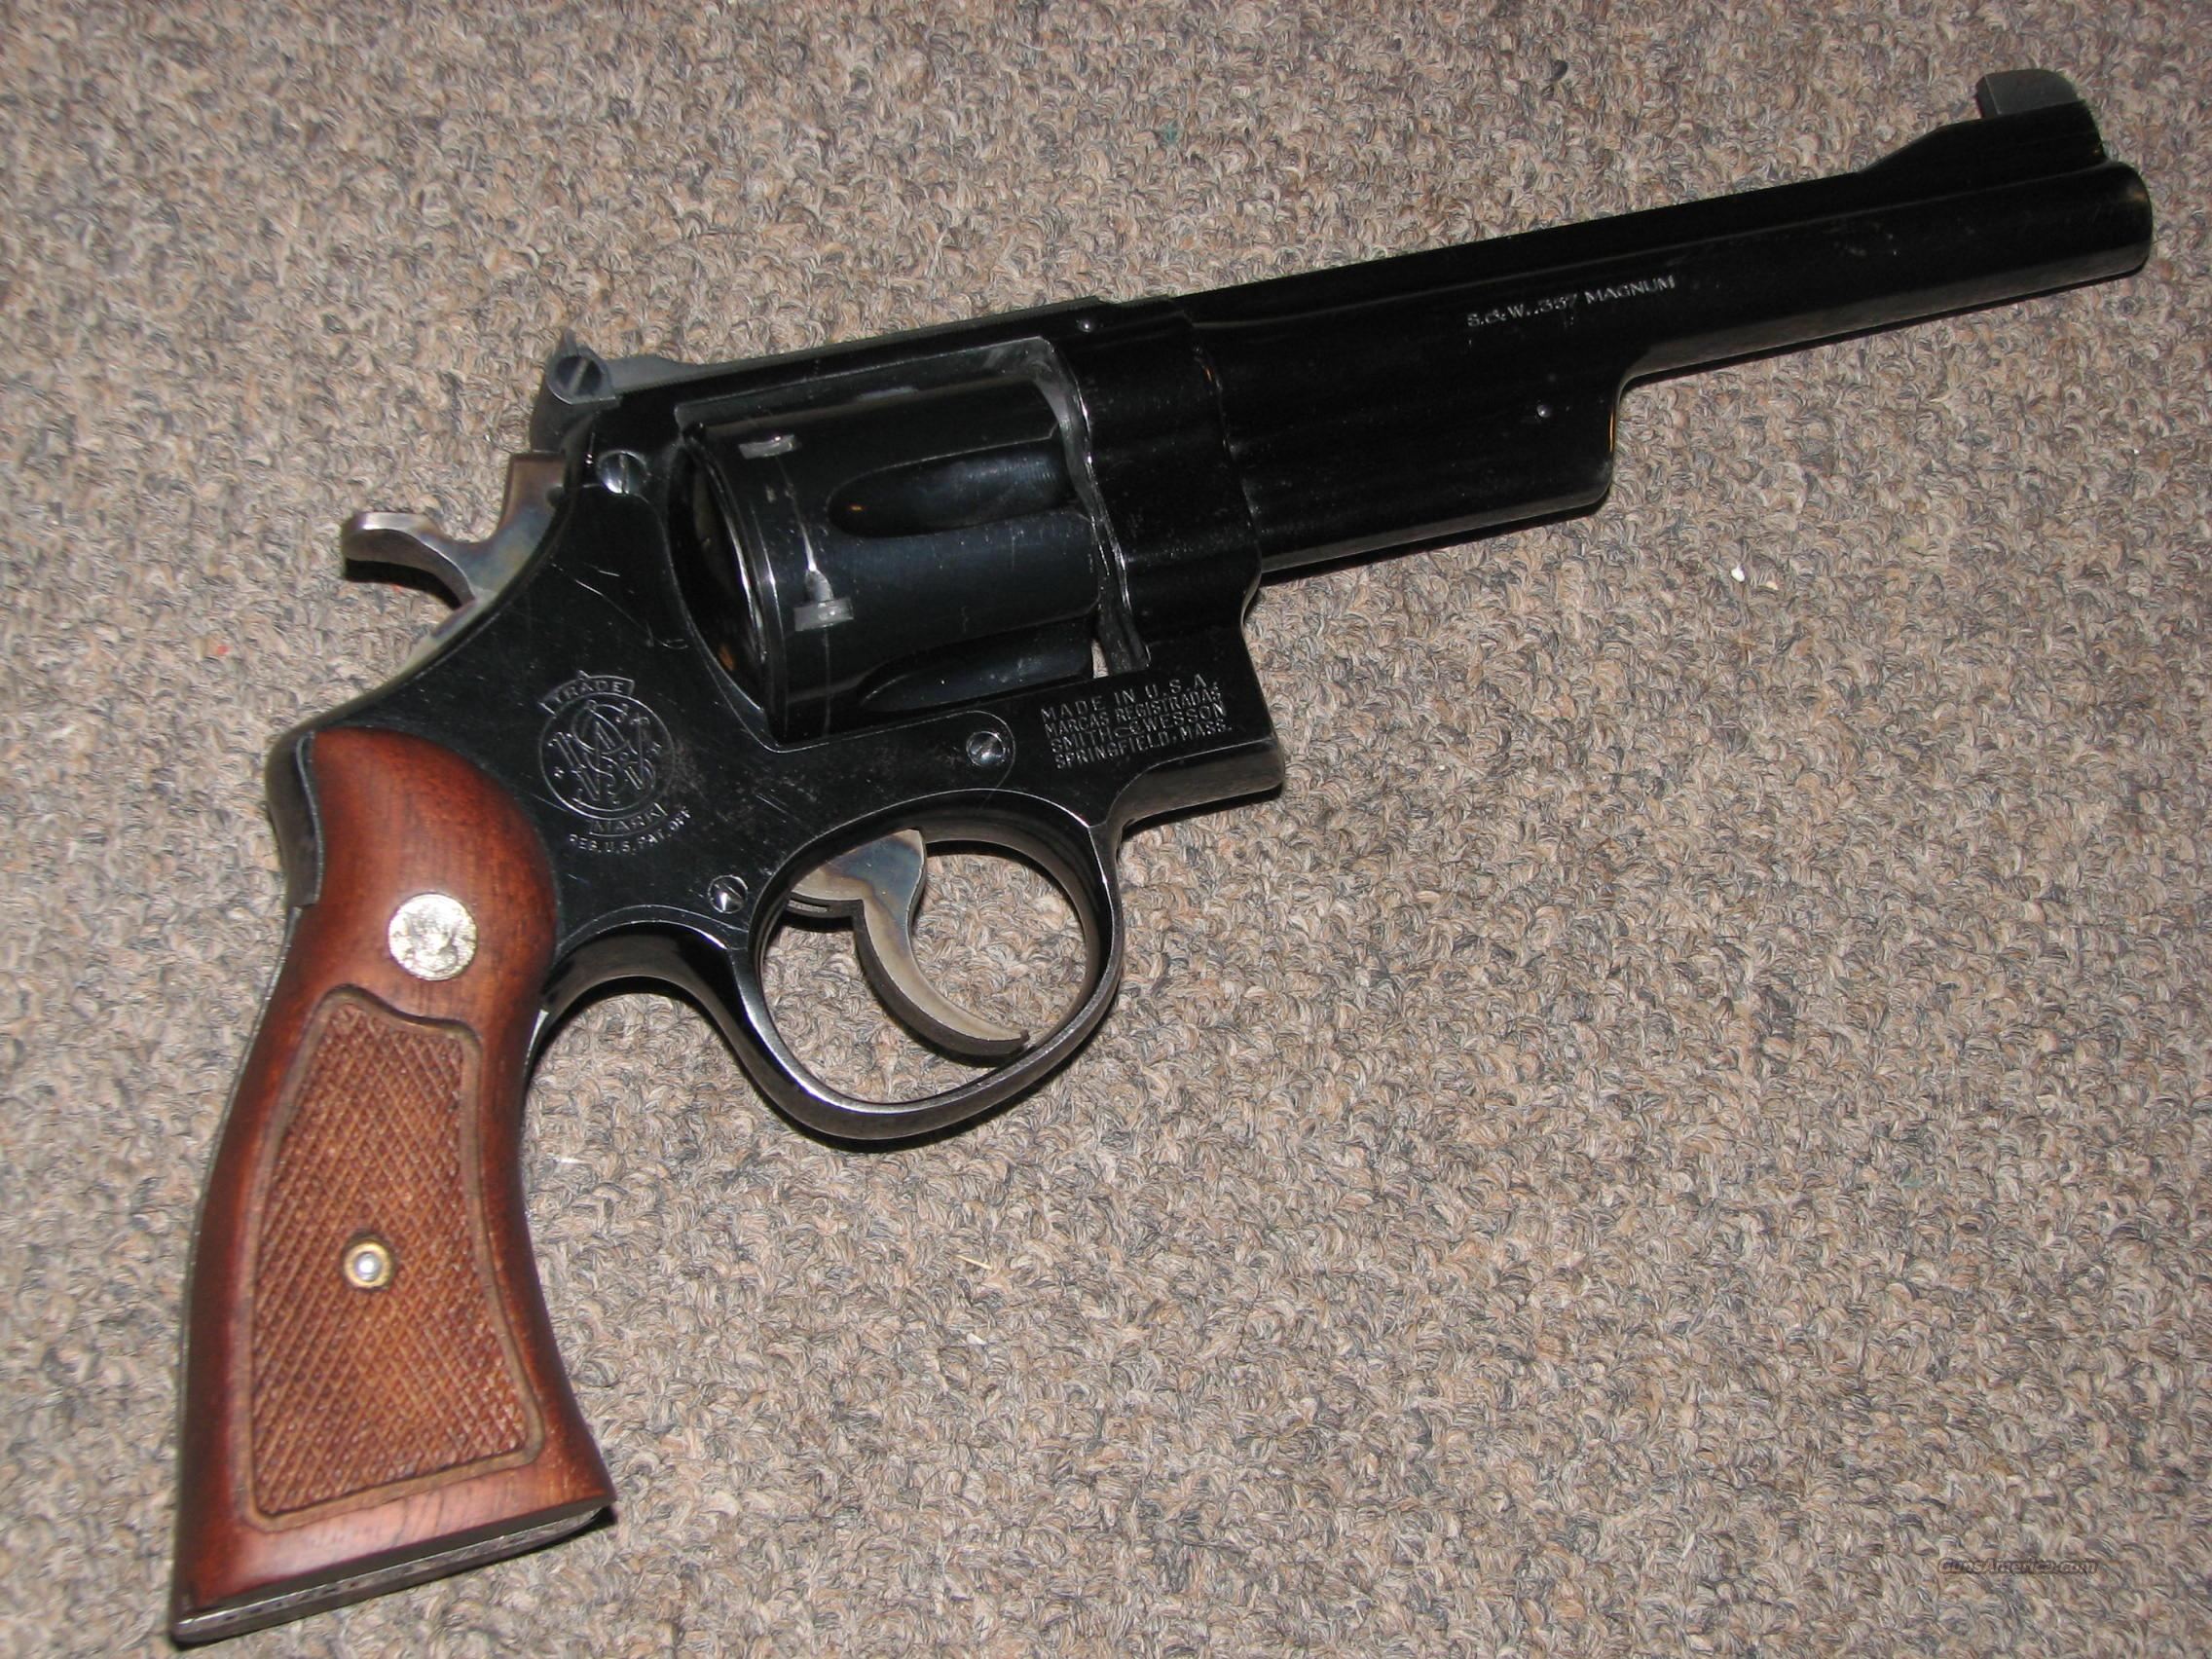 SMITH & WESSON PRE-27 .357 MAGNUM 5-SCREW  Guns > Pistols > Smith & Wesson Revolvers > Full Frame Revolver